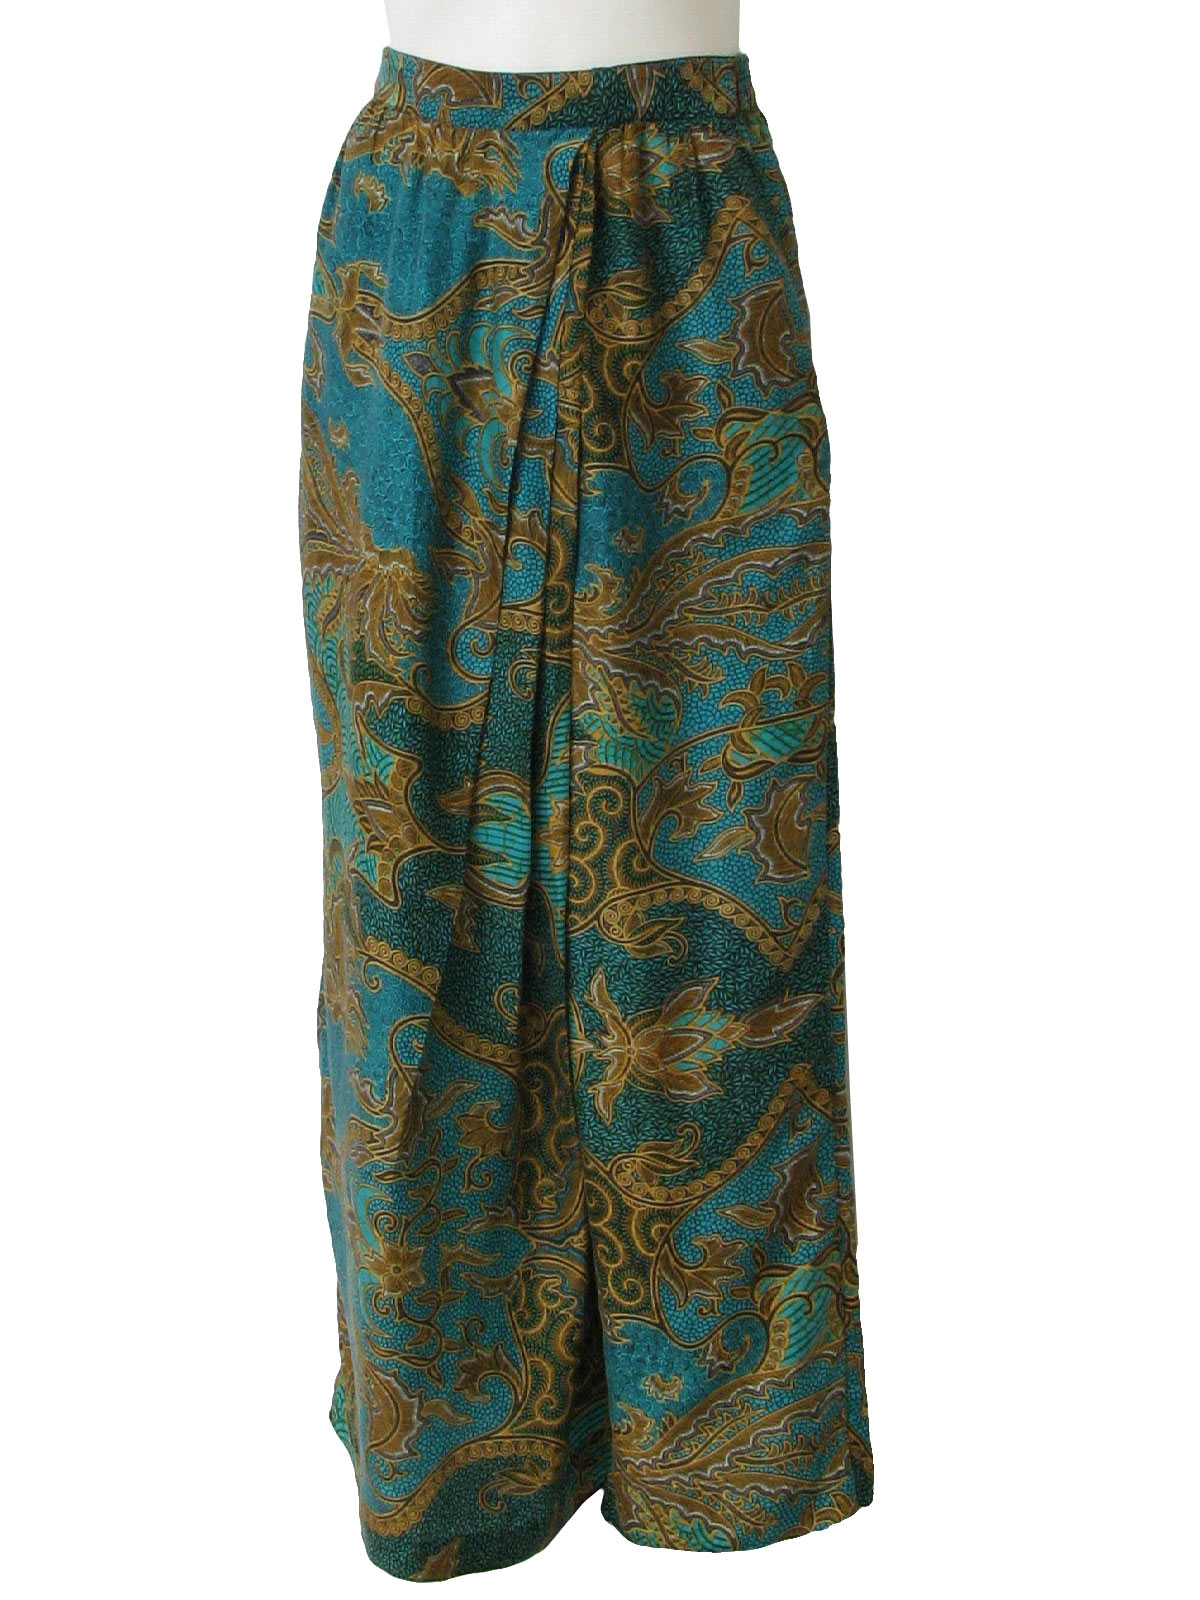 Simple Casual Hippie Boho Women Long Pants Vintage Ethnic Style Women Summer